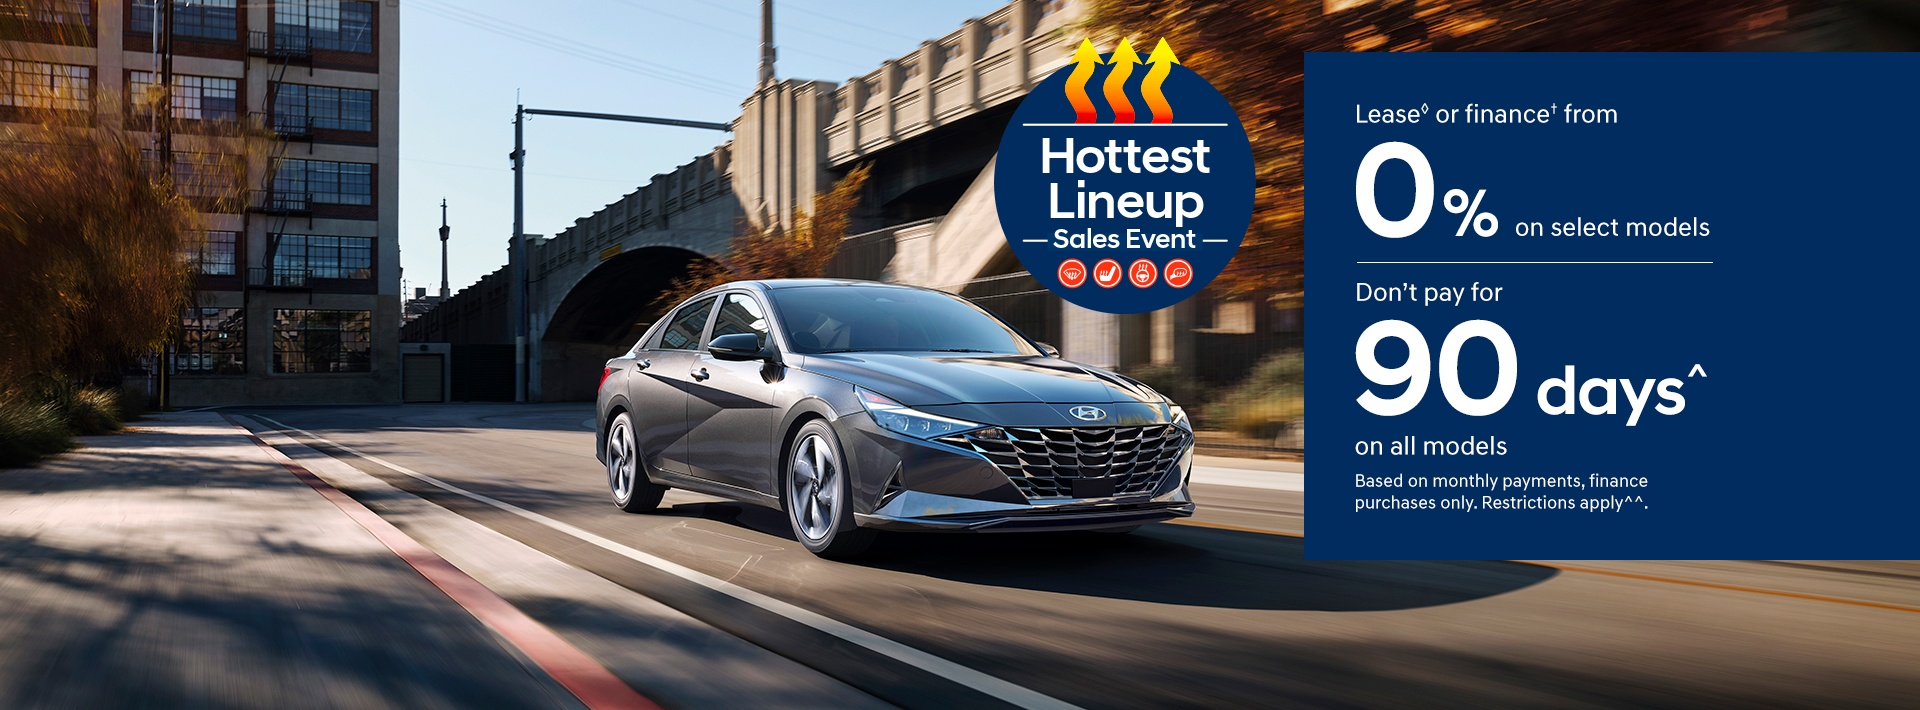 Hyundai October special hottest lineup Bowmanville